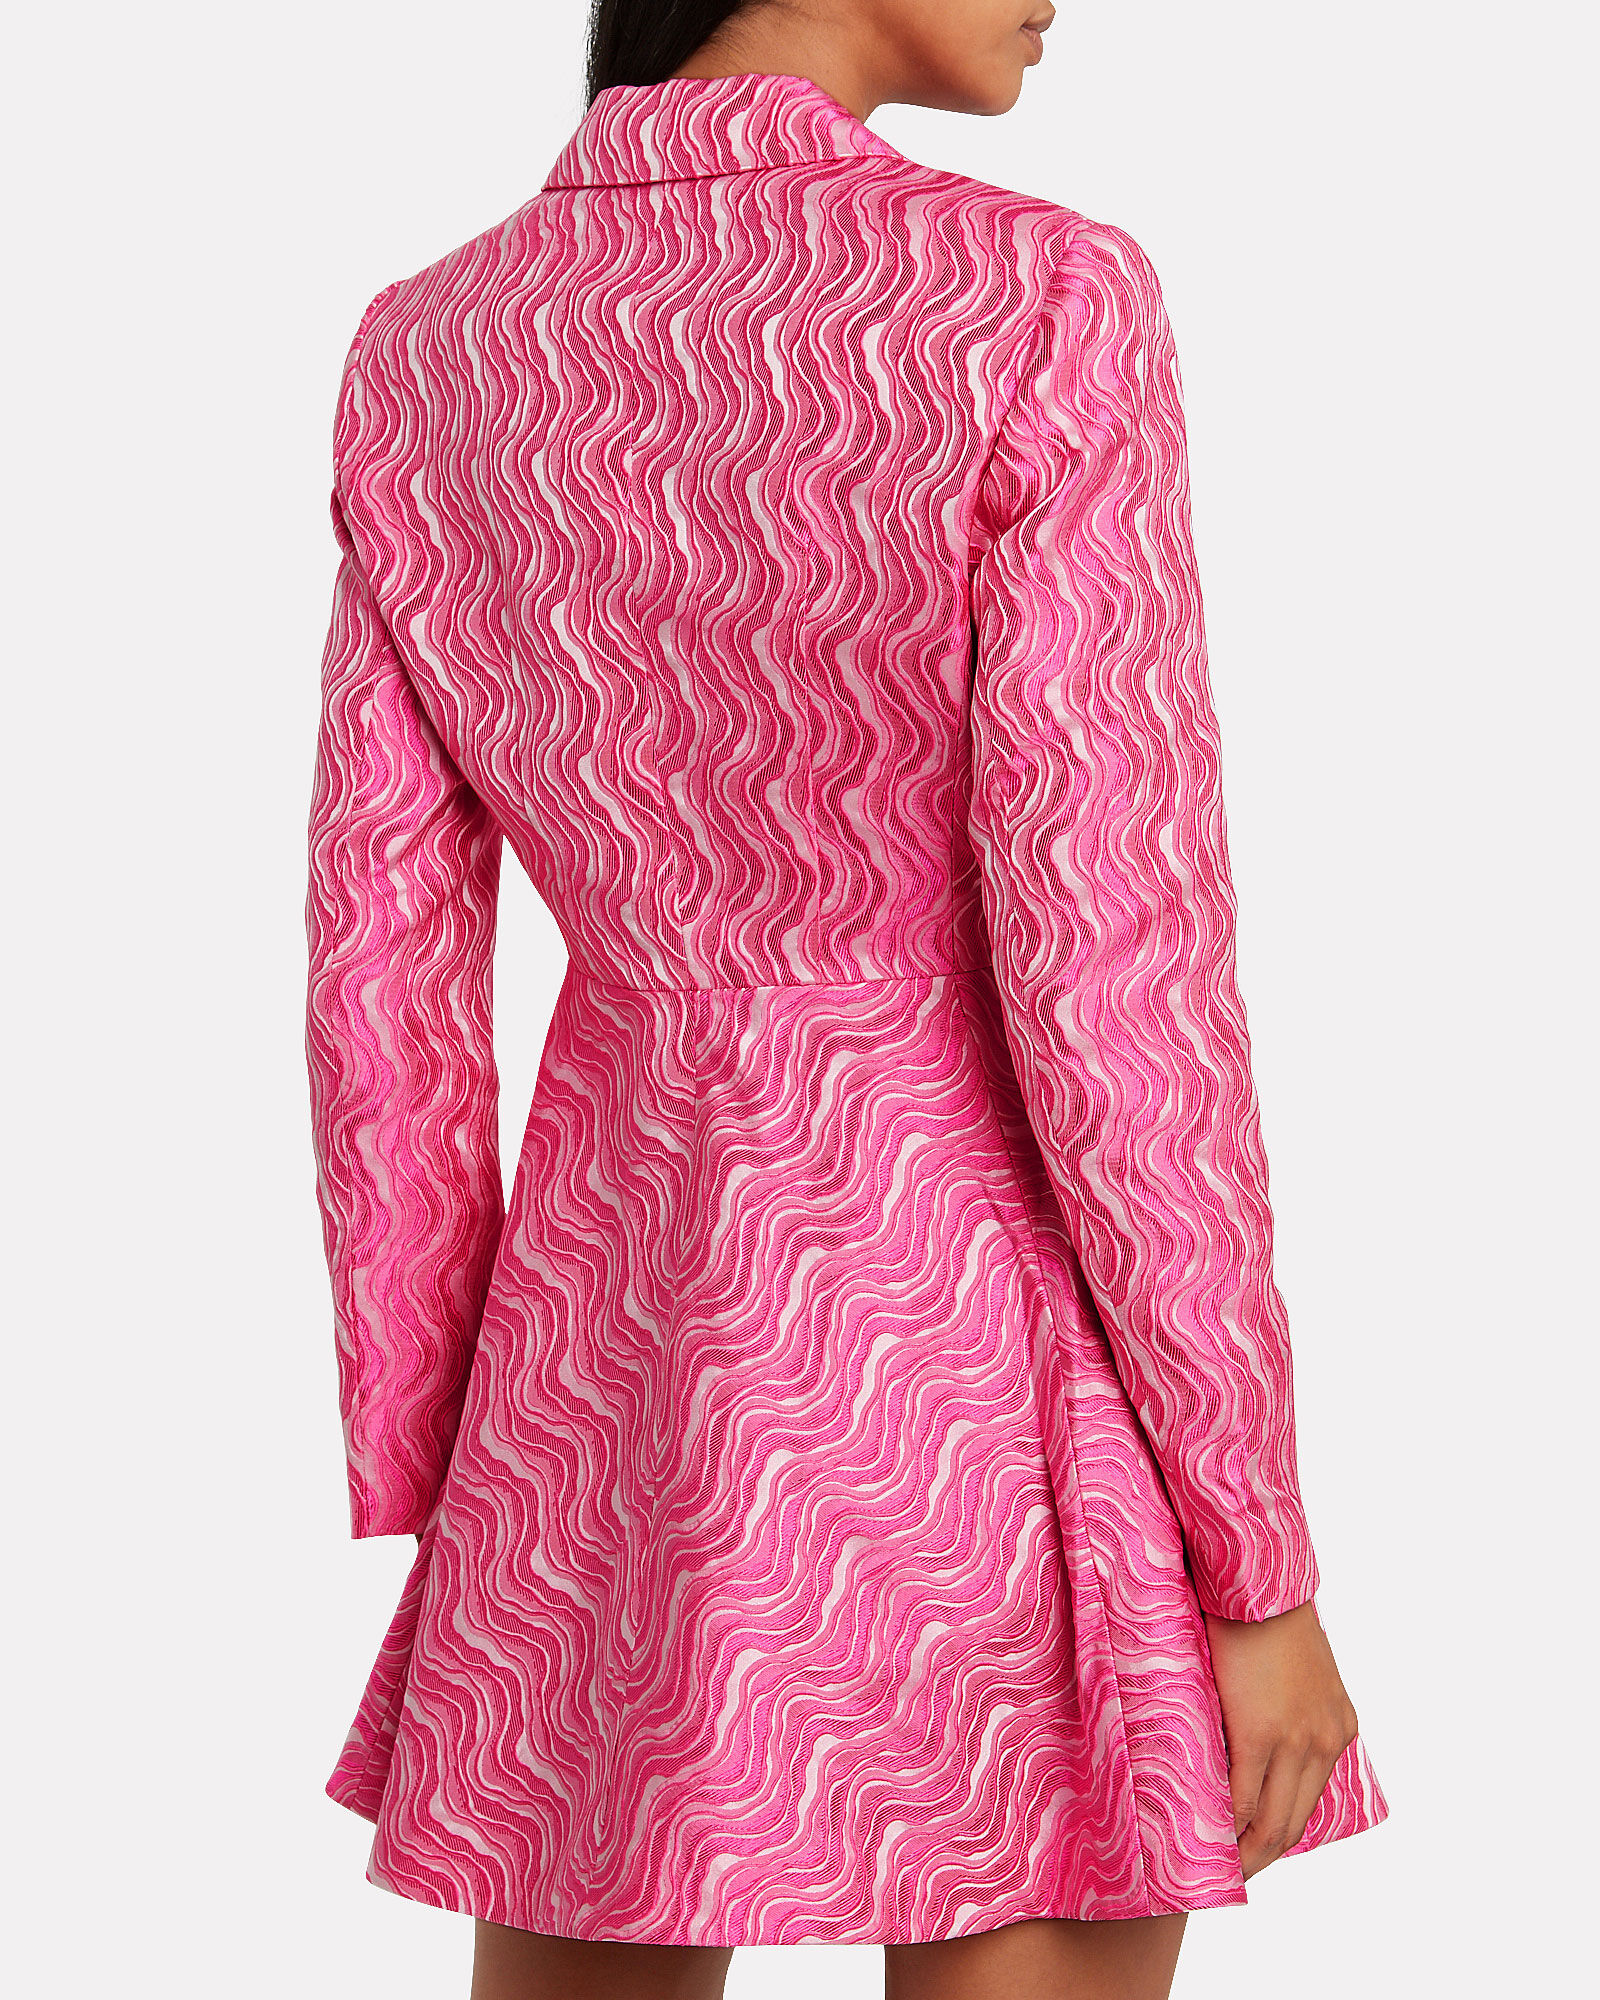 No. 23 Jacquard Blazer Dress, PINK, hi-res